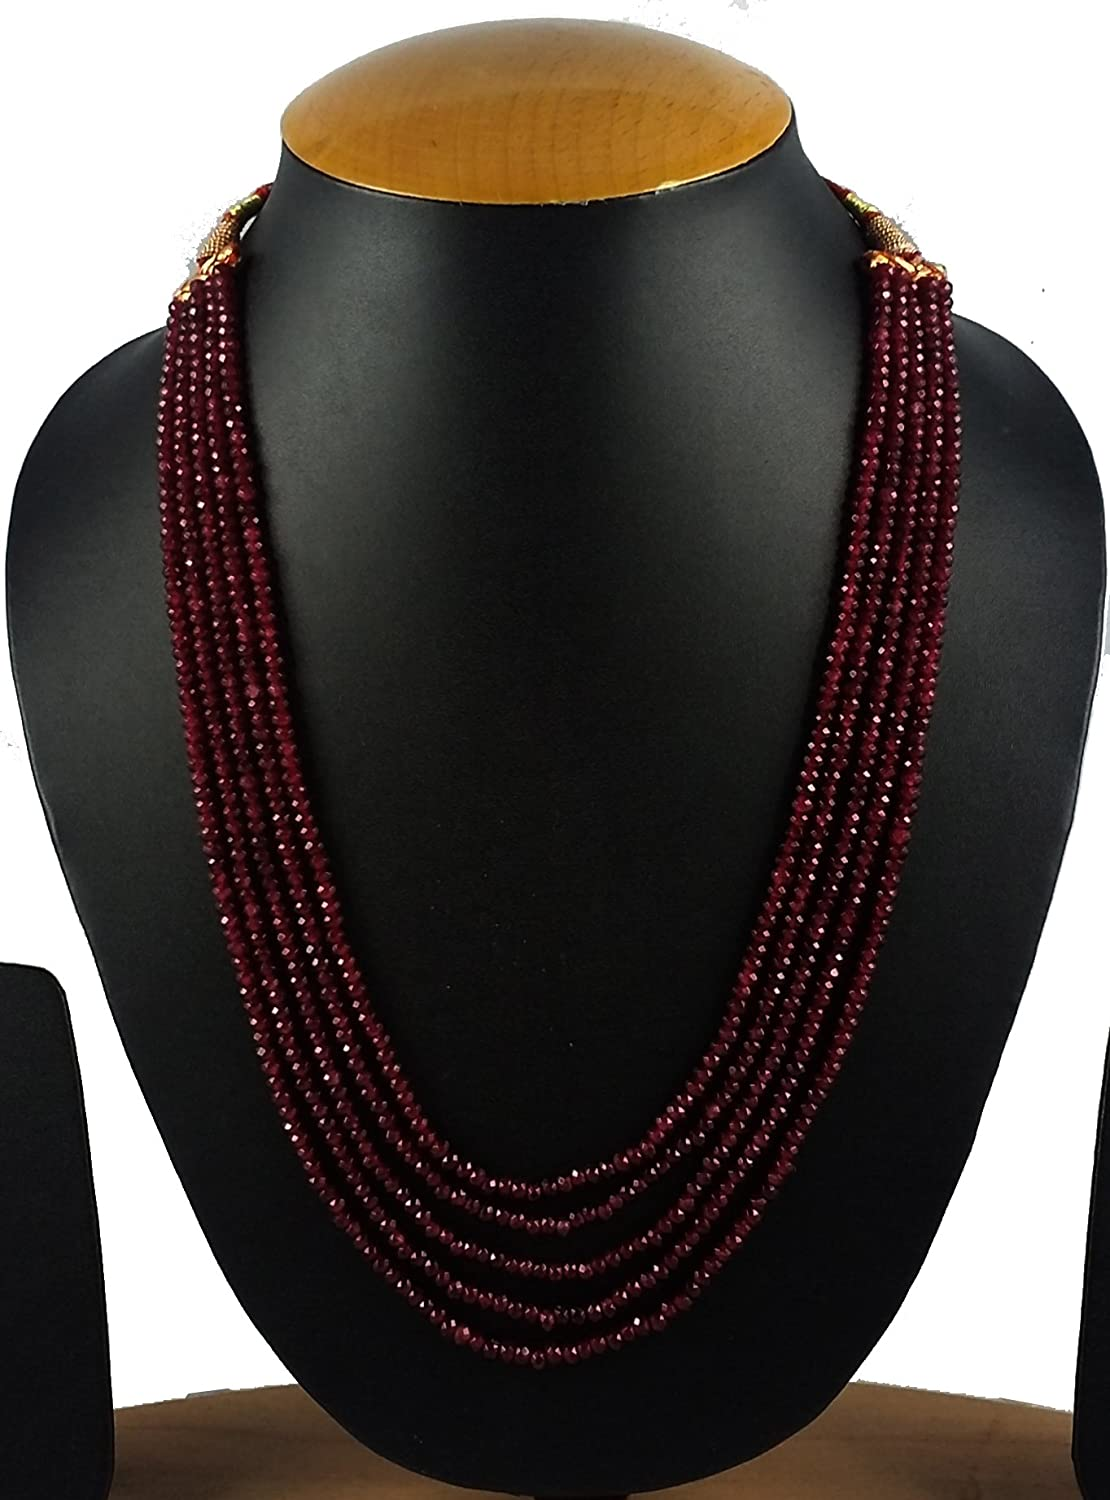 color allergic purple chain necklace anti bronze beads list jewelry p maroon antiallergic mailing amp